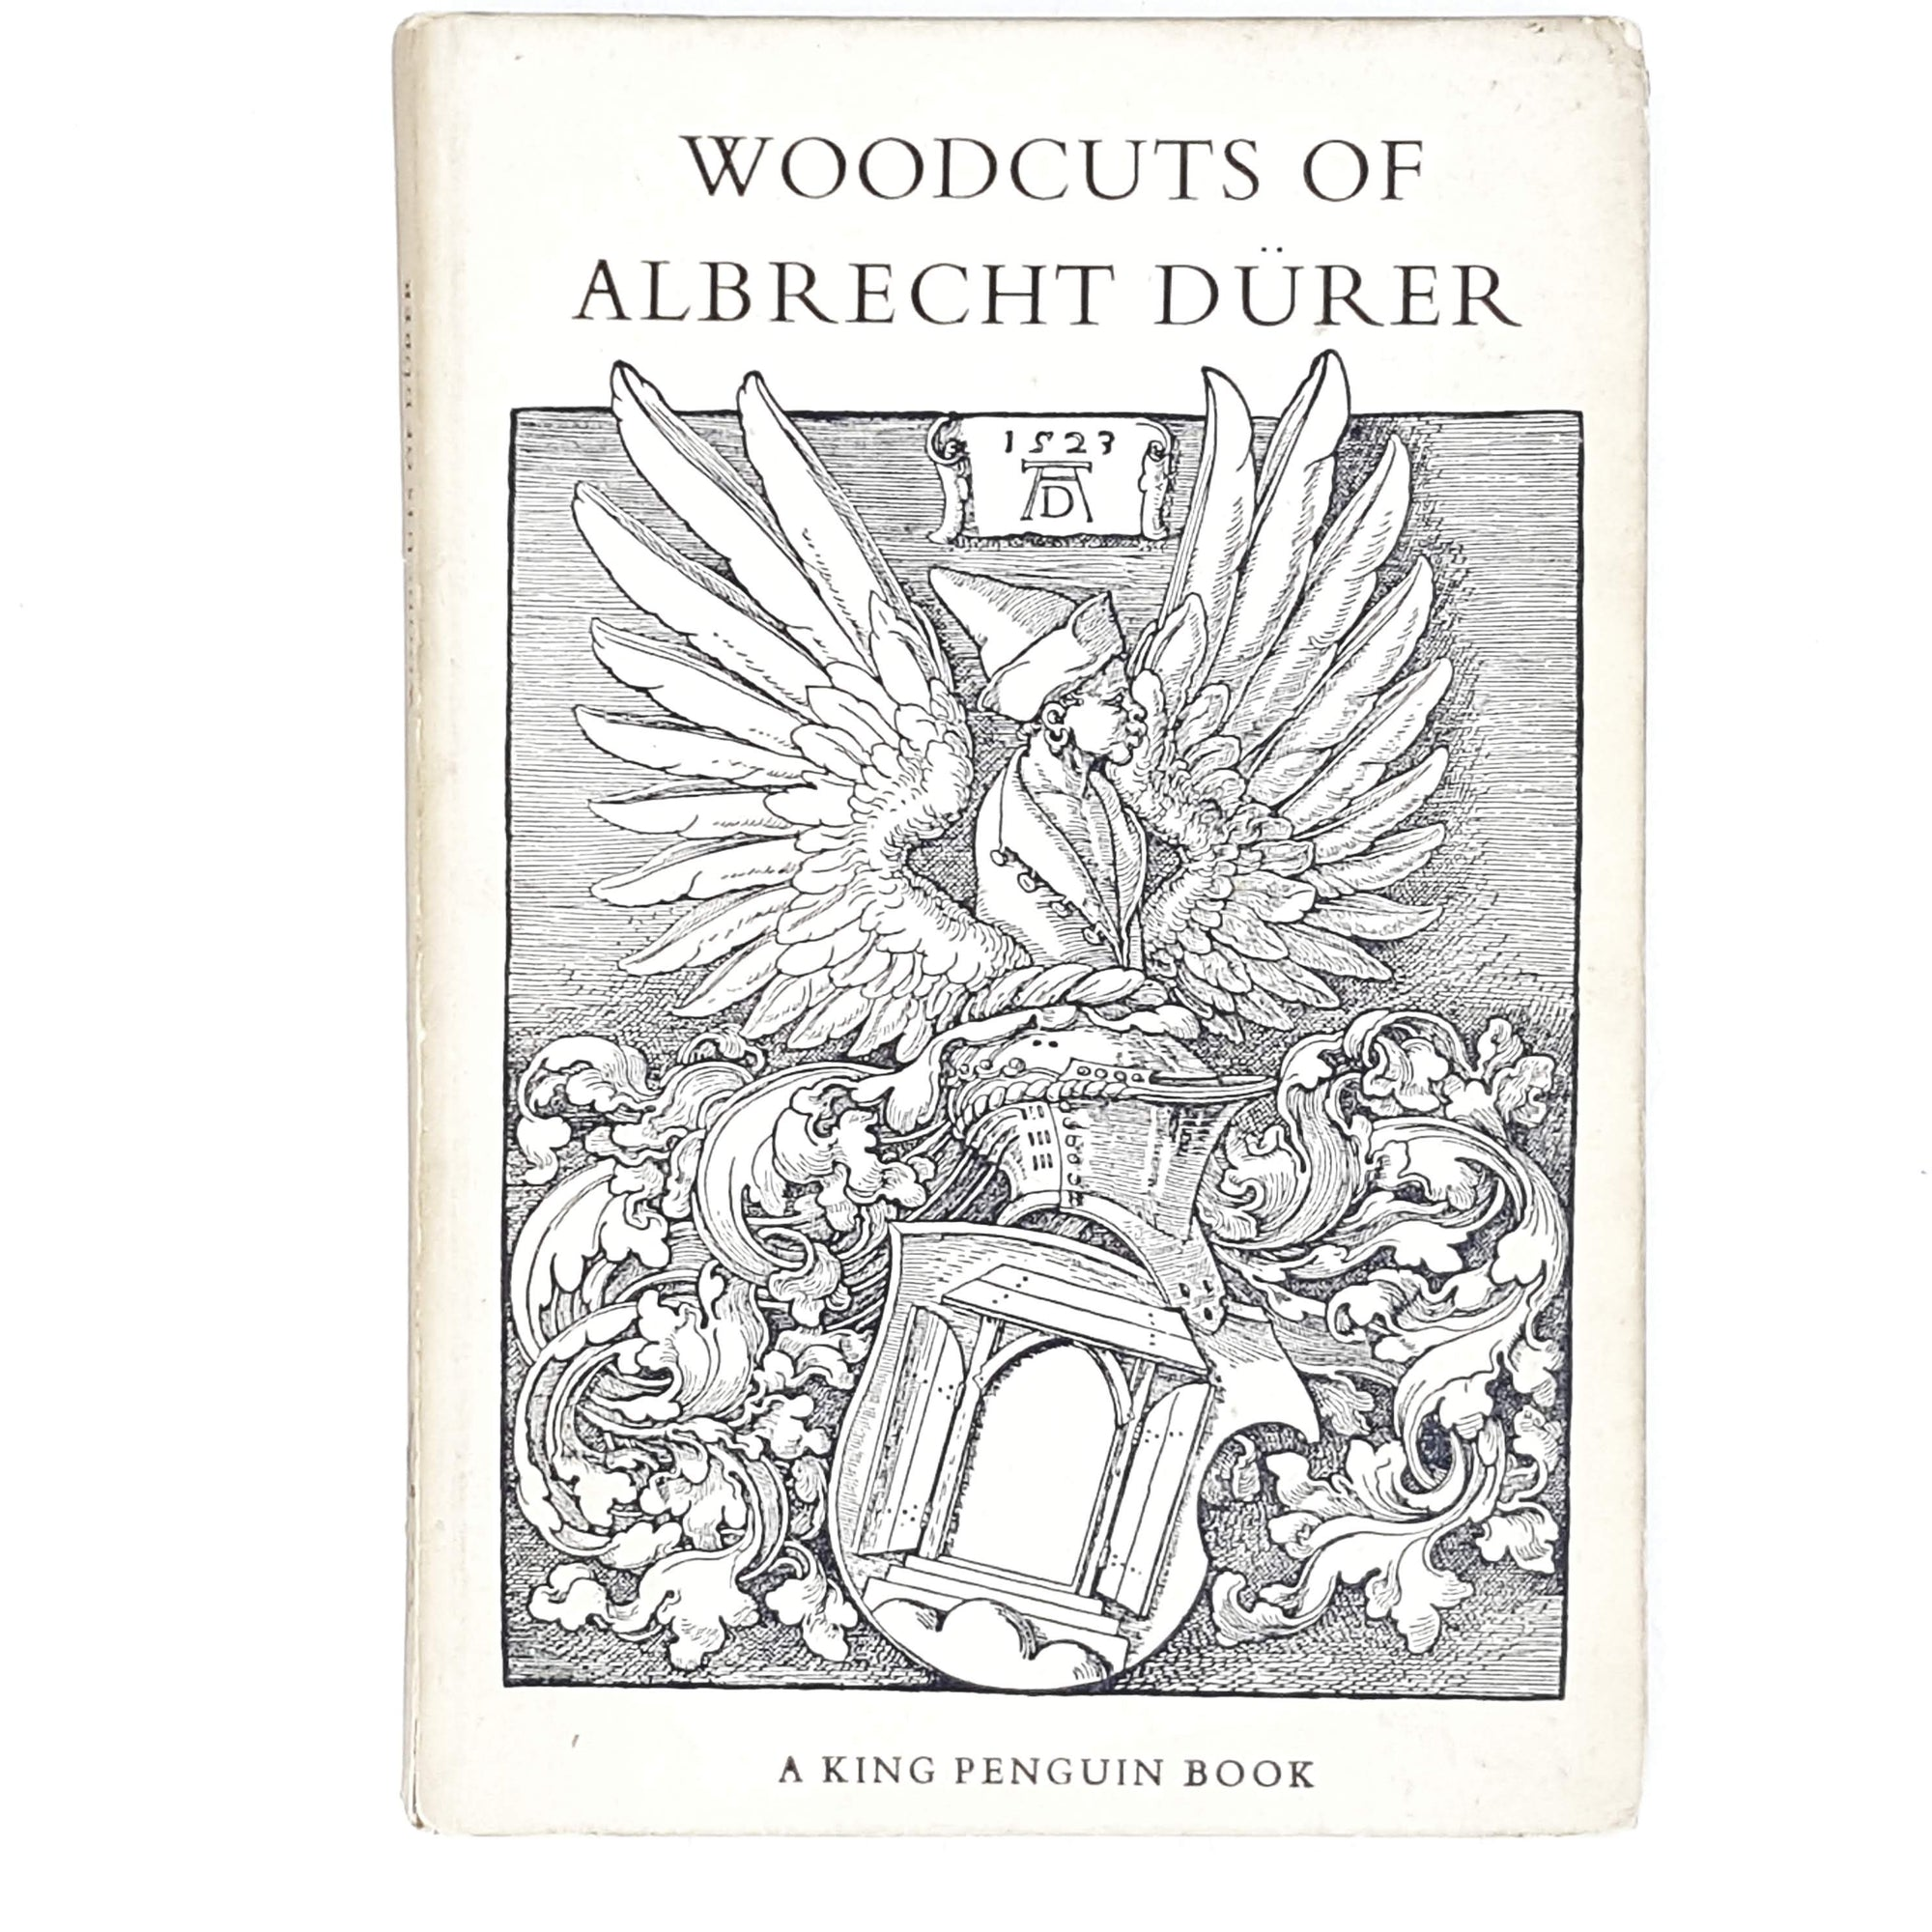 white-first-edition-king-penguin-woodcuts-albrecht-durer